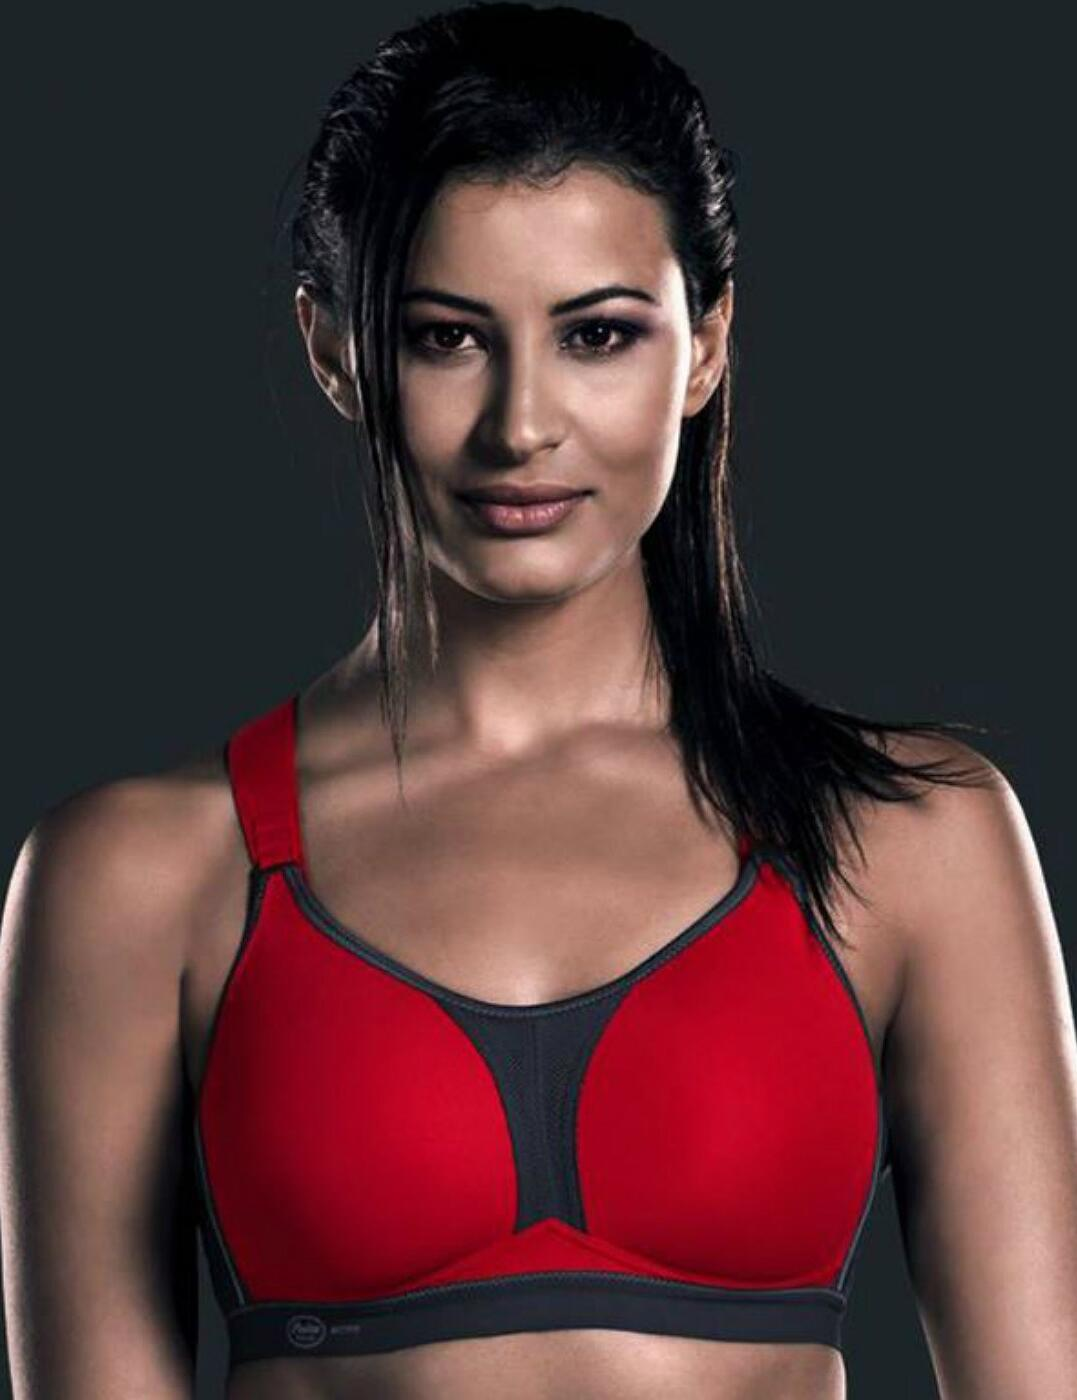 5537 Anita Active DynamiX Star Sports Bra X-back - 5537 Red